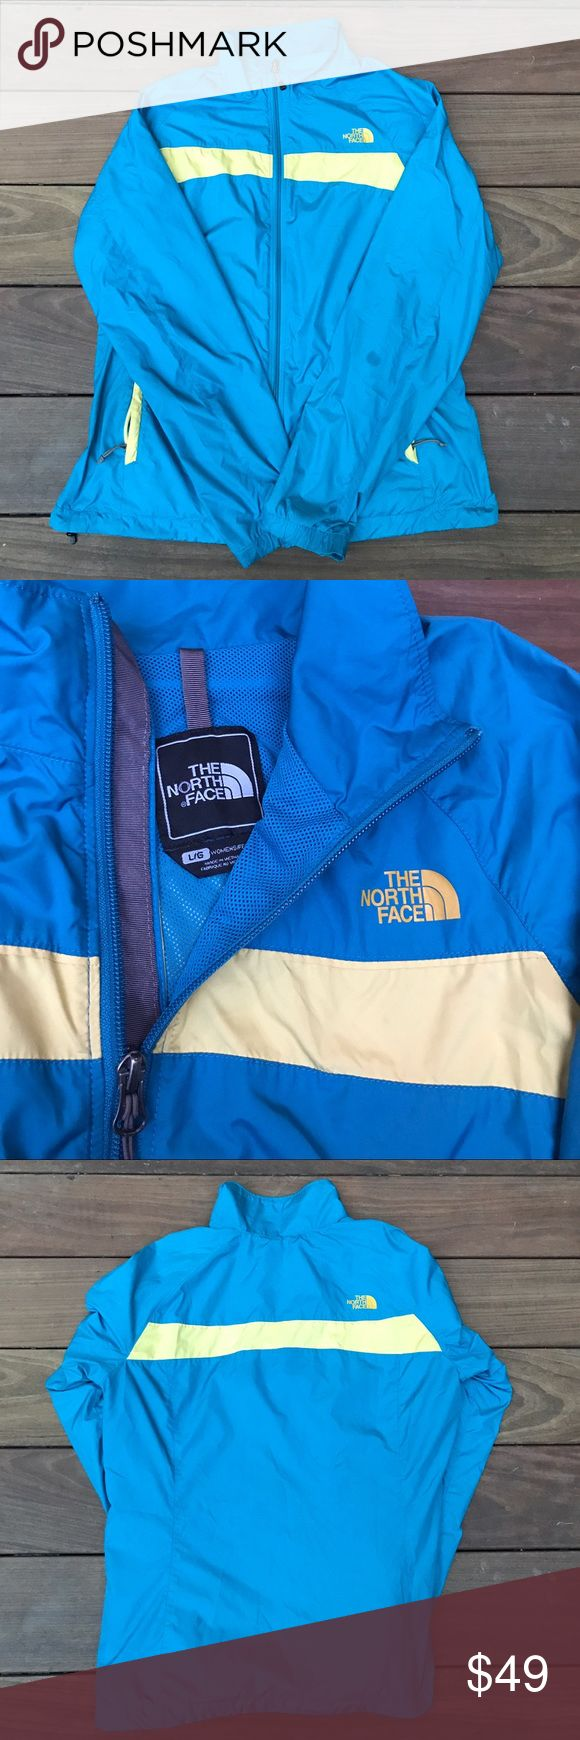 Northface zip-up windbreaker Blue & yellow Northface zip-up windbreaker. Has ink stains on one of the sleeves but has no other flaws and is still useable! Size women's large. The North Face Jackets & Coats